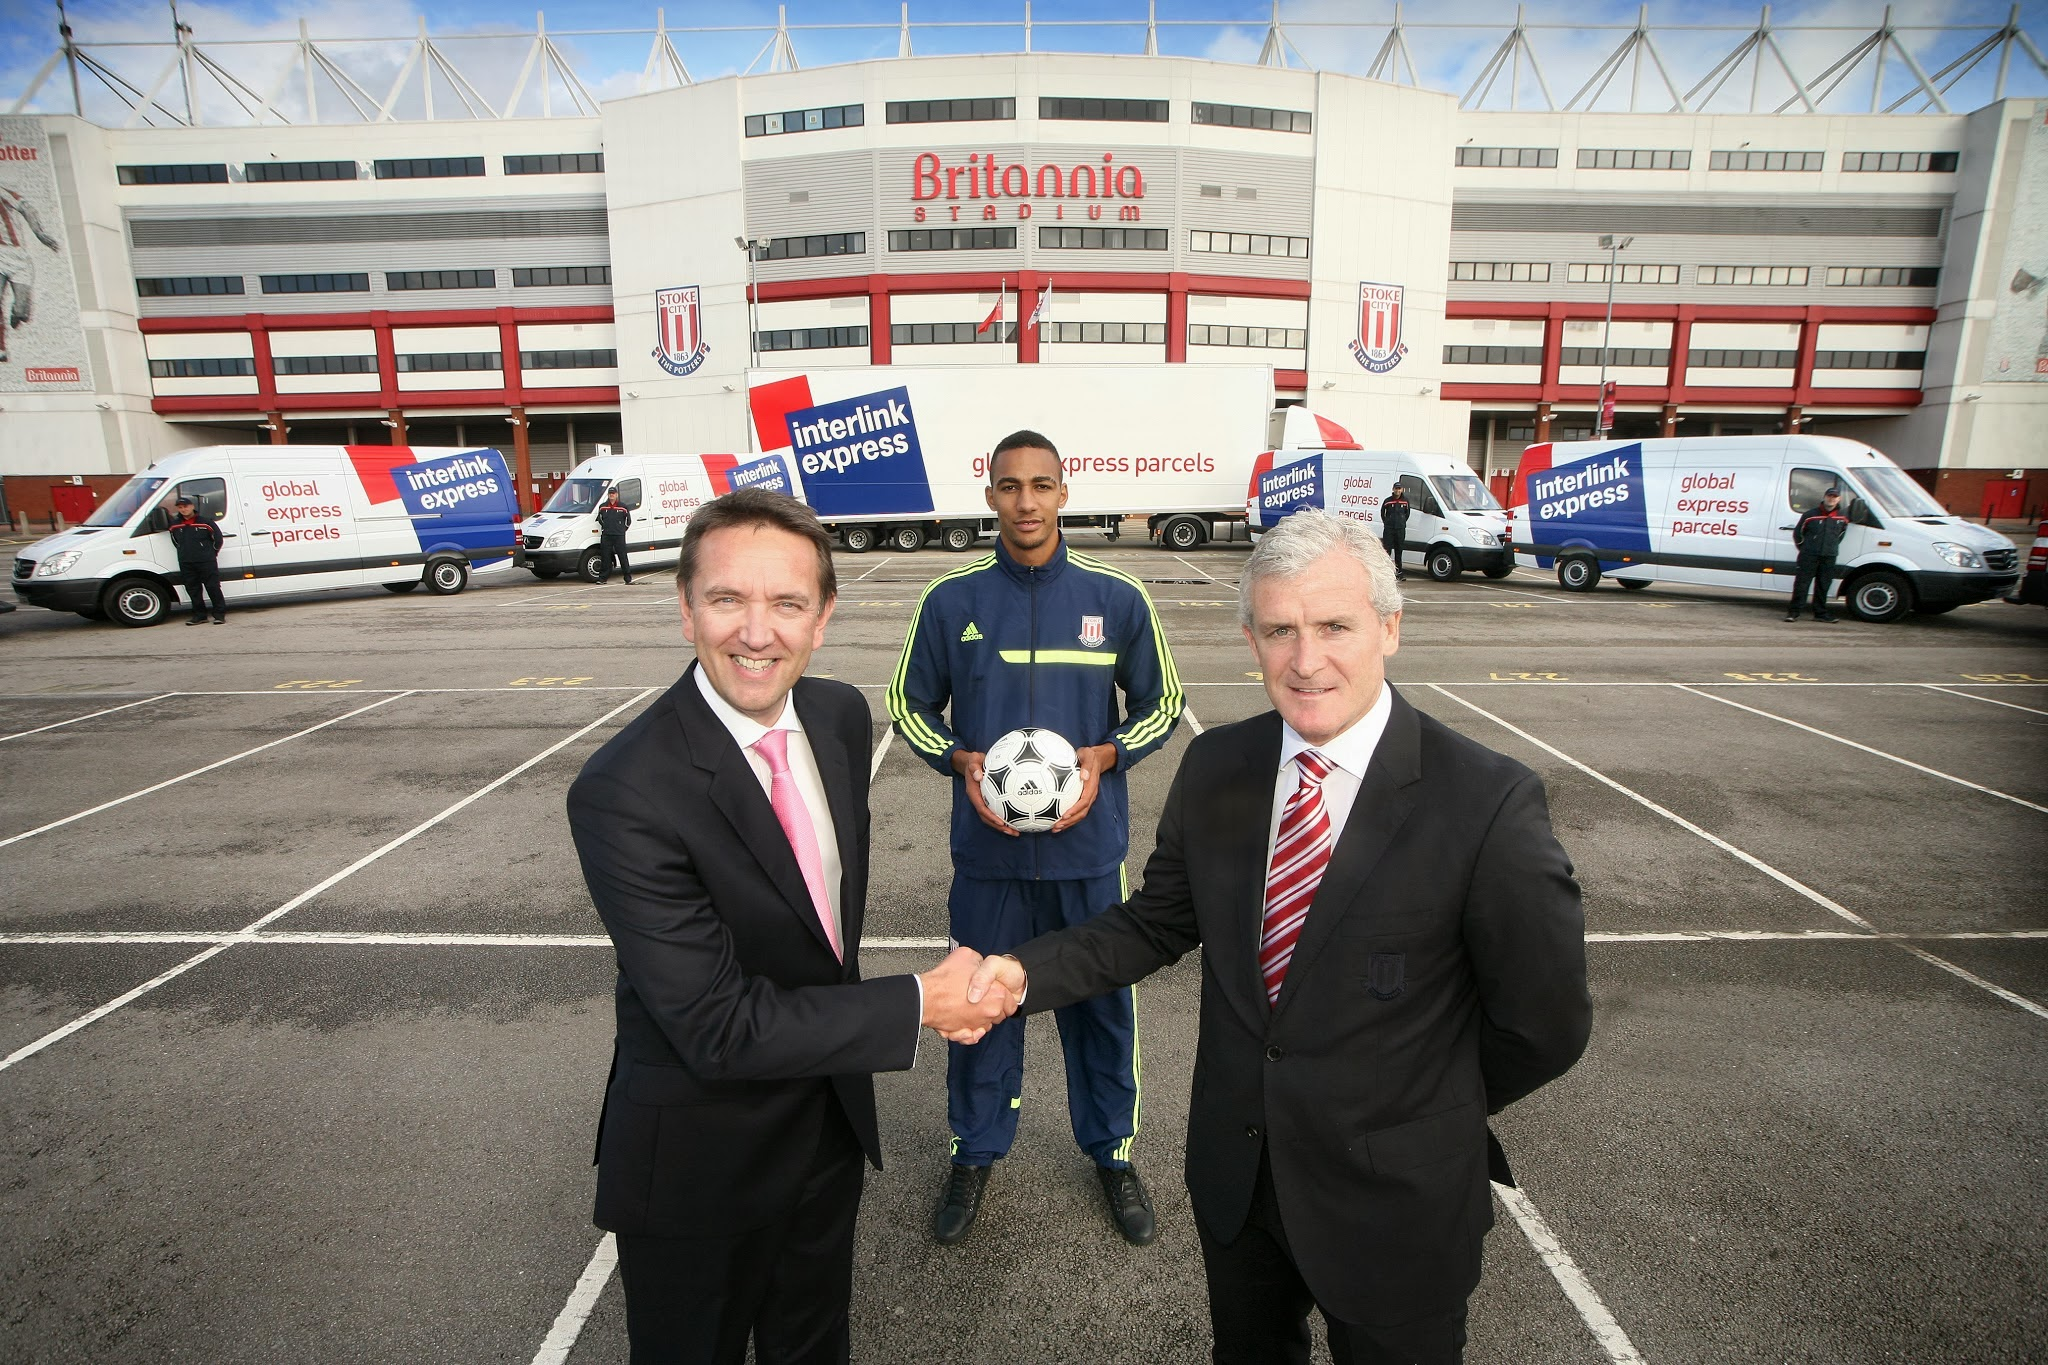 Stoke City sign extension with Interlink